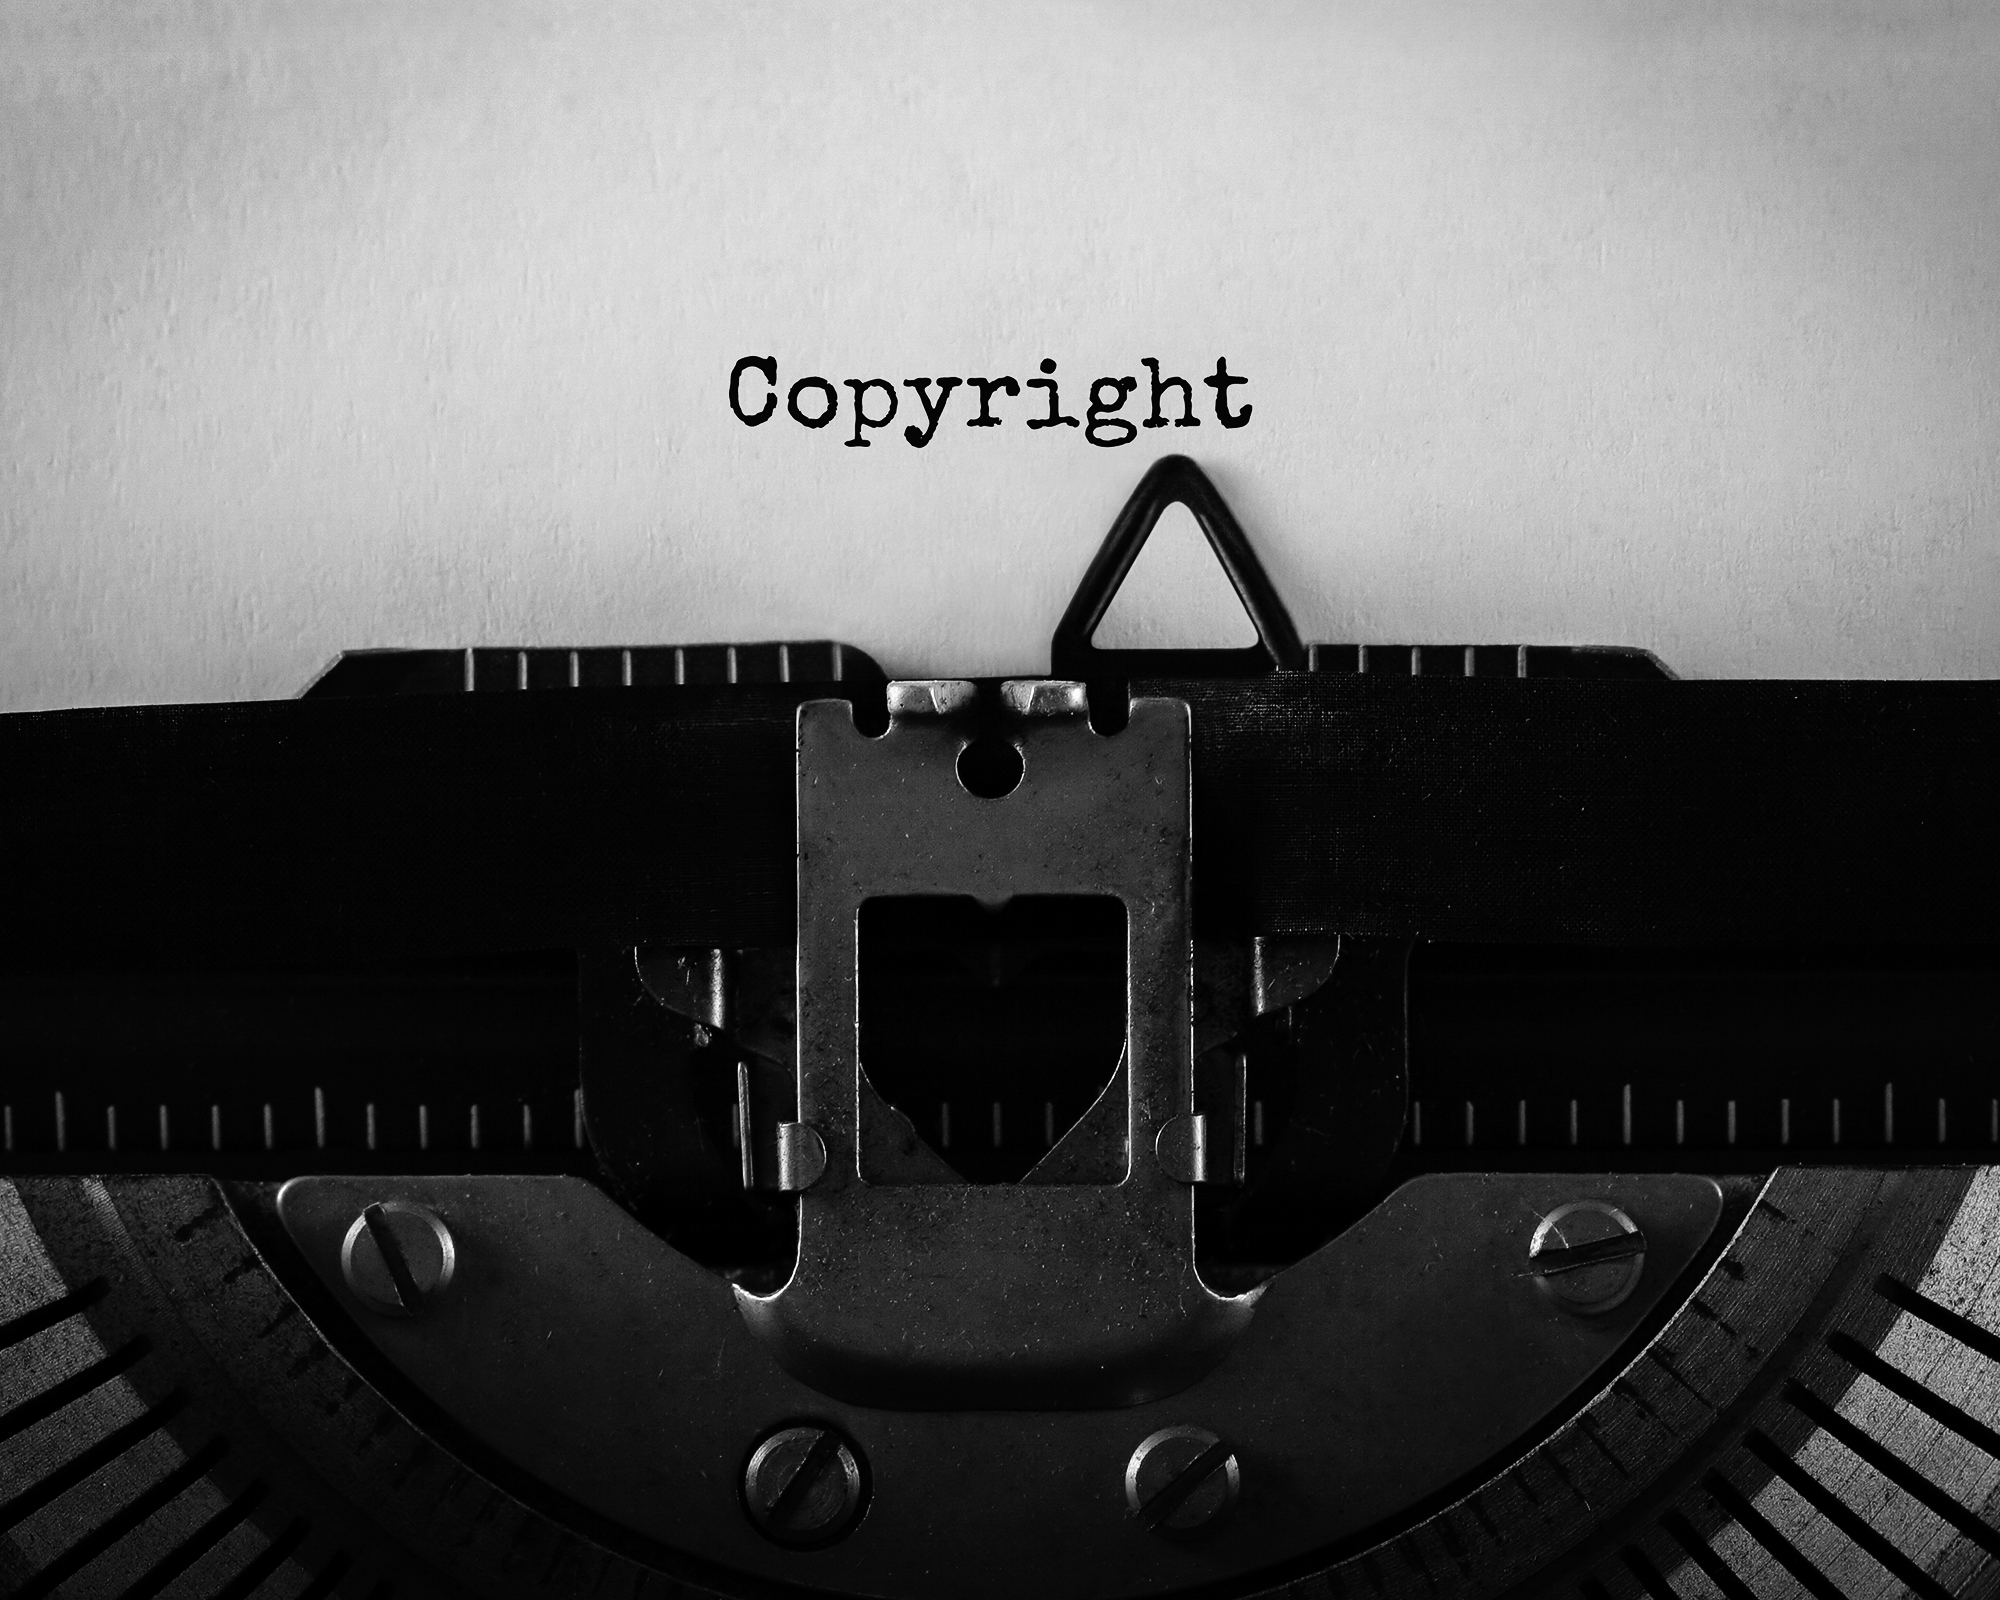 What Goes on My Copyright Page? Copyright Information Made Simple